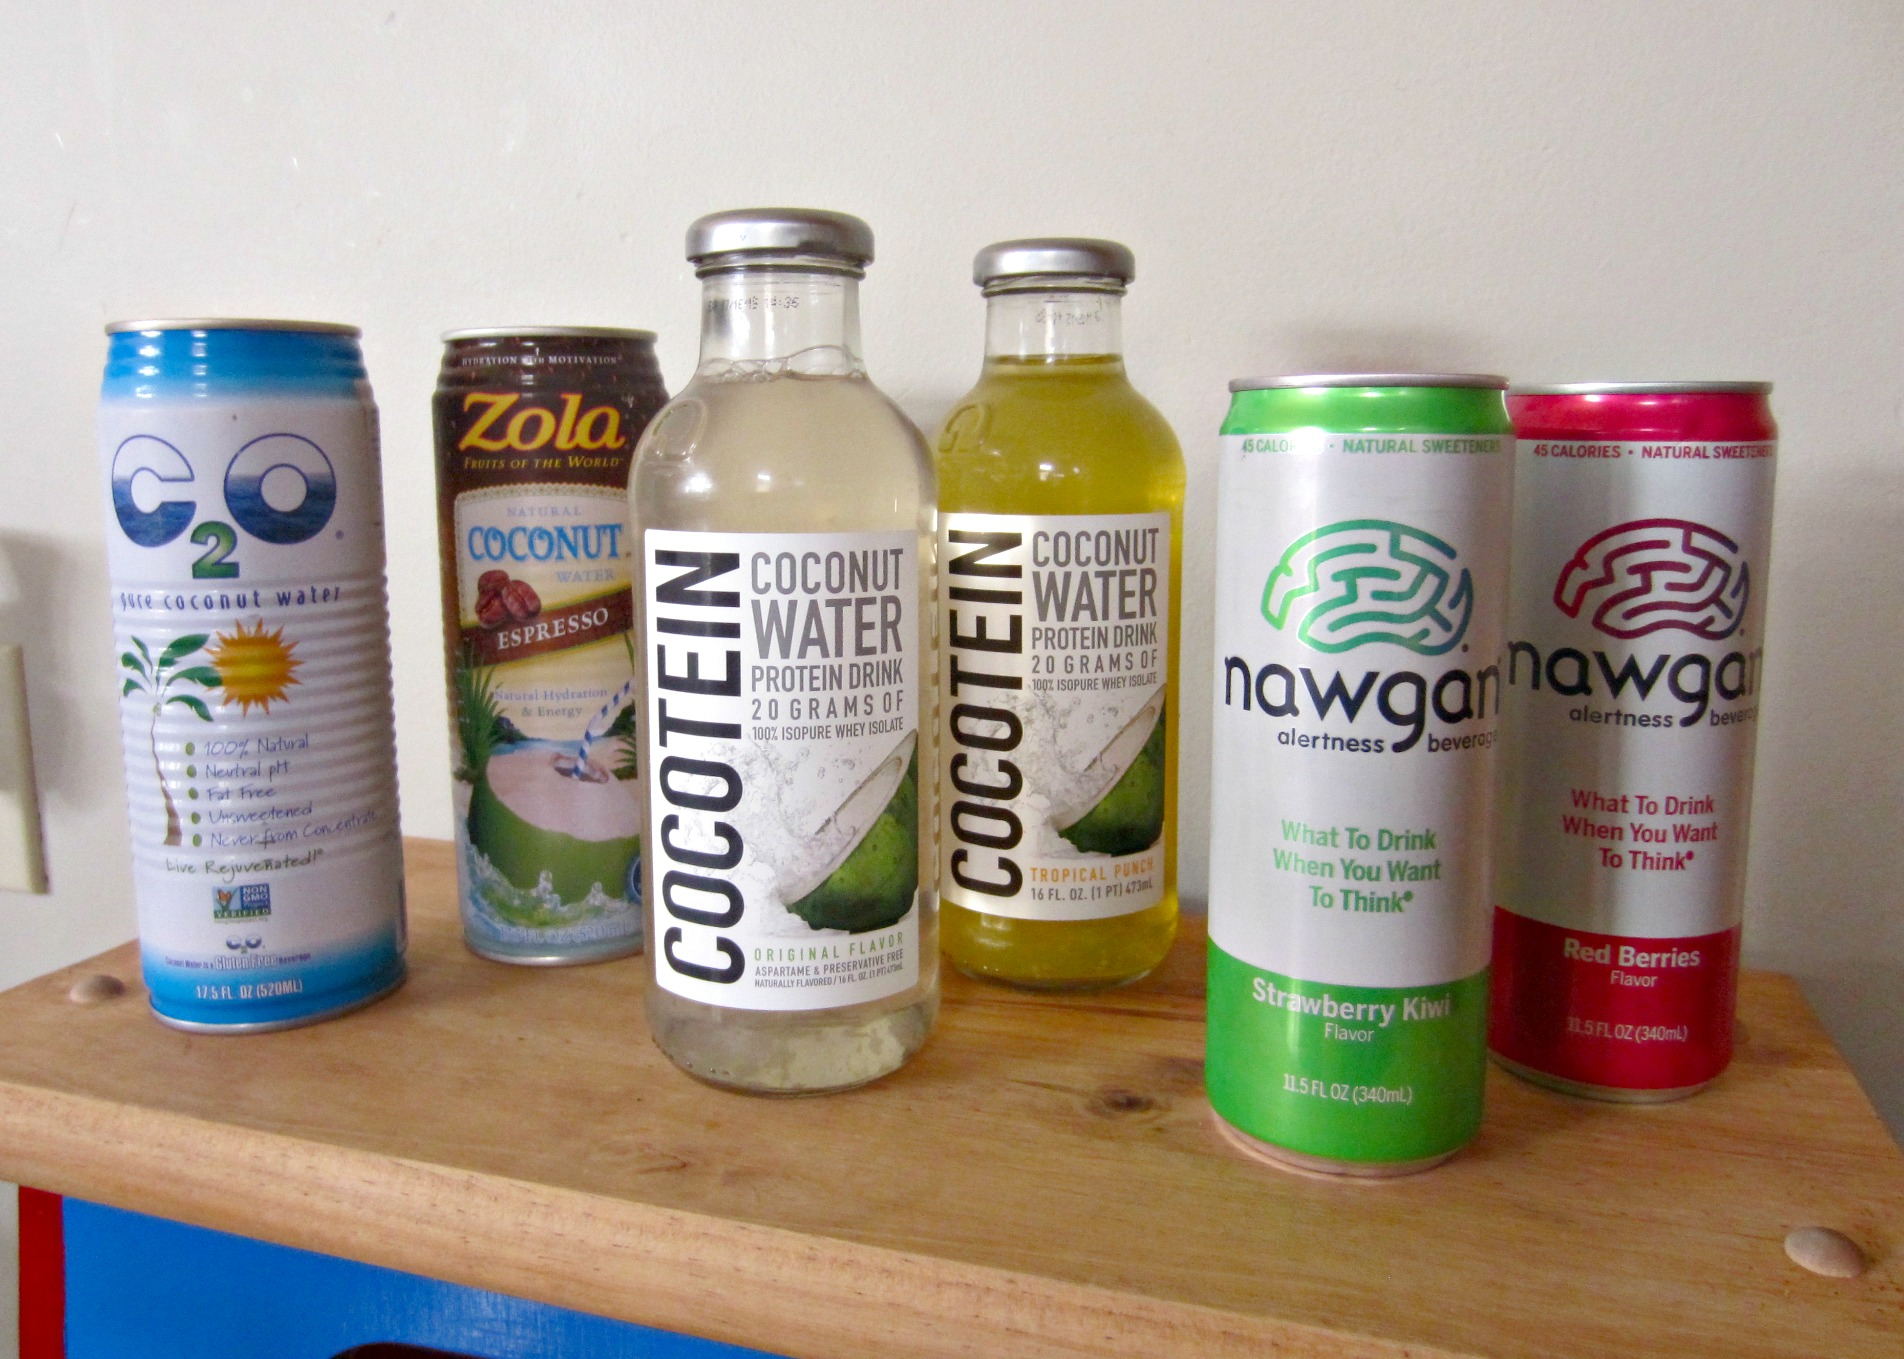 vitamin shoppe coconut waters and nawgan drink